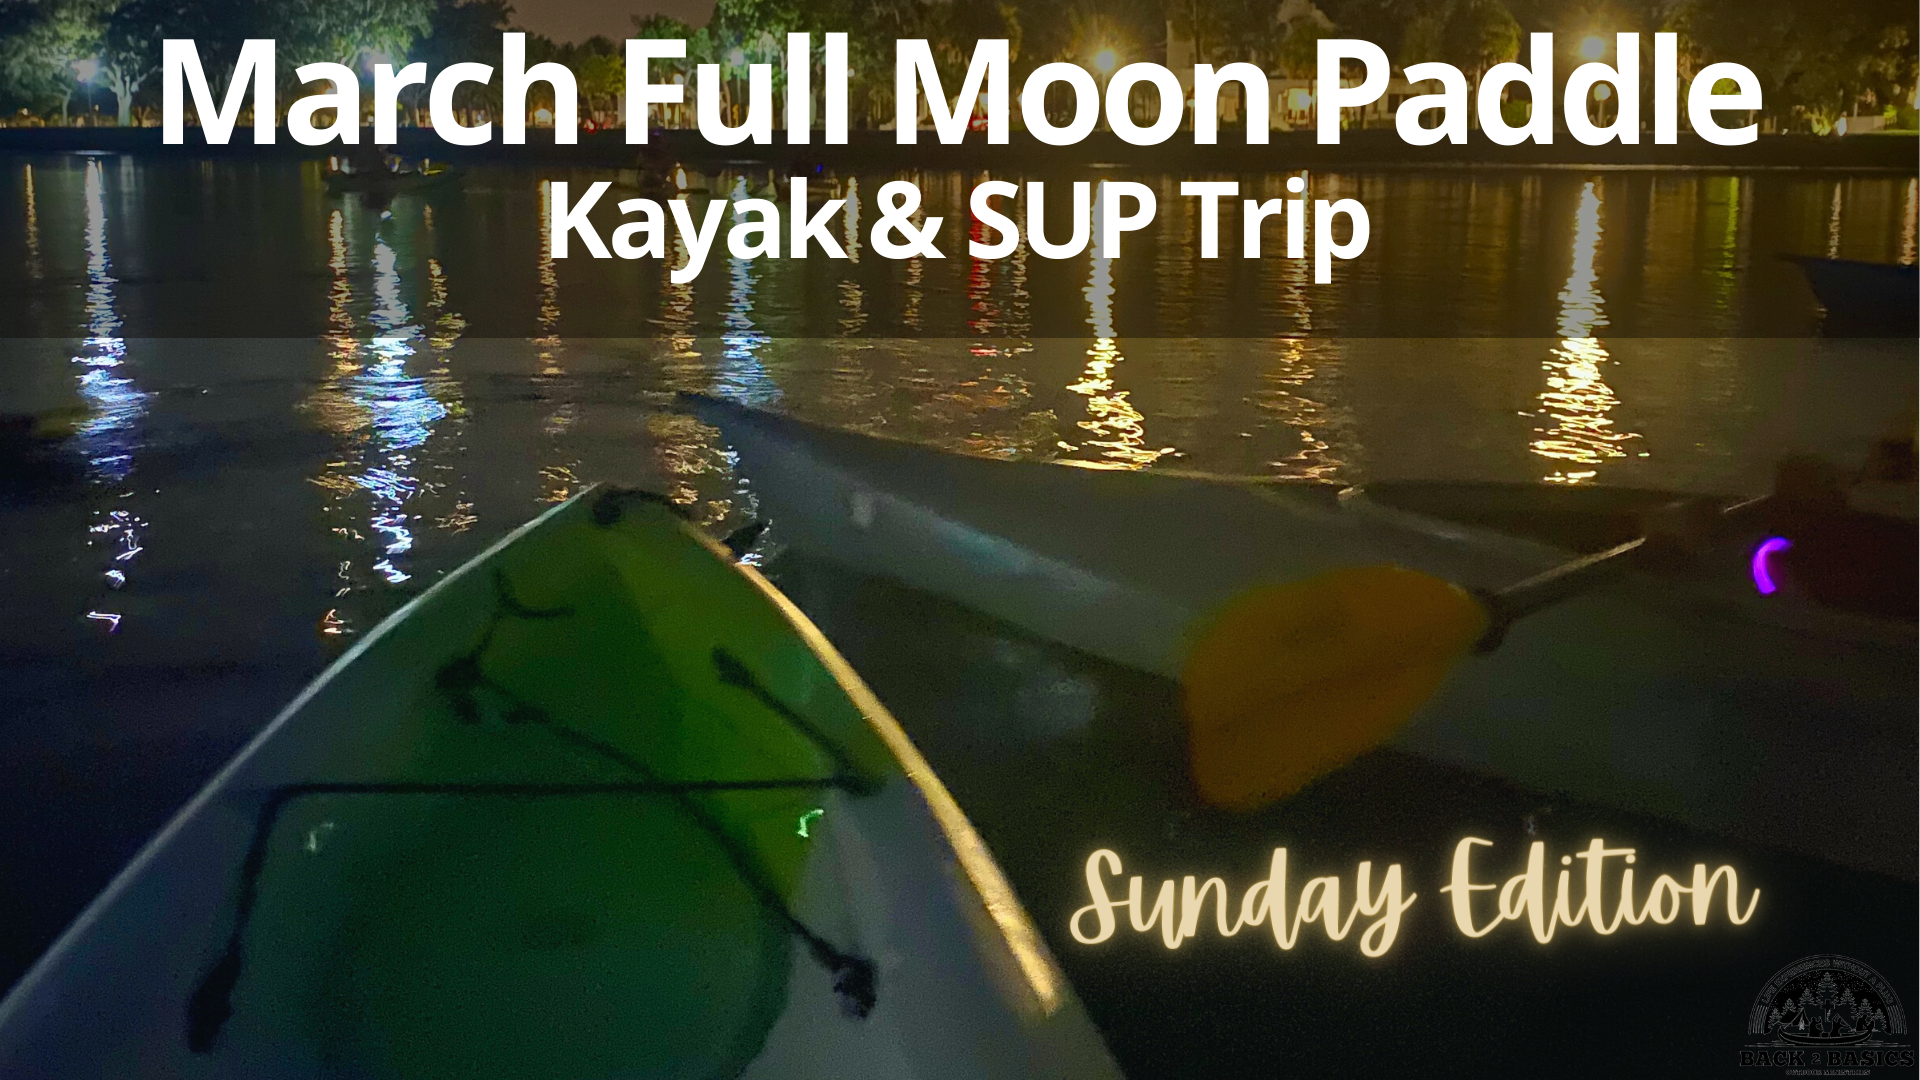 march full moon paddle adventure sunday edition, back2basics outdoor ministries